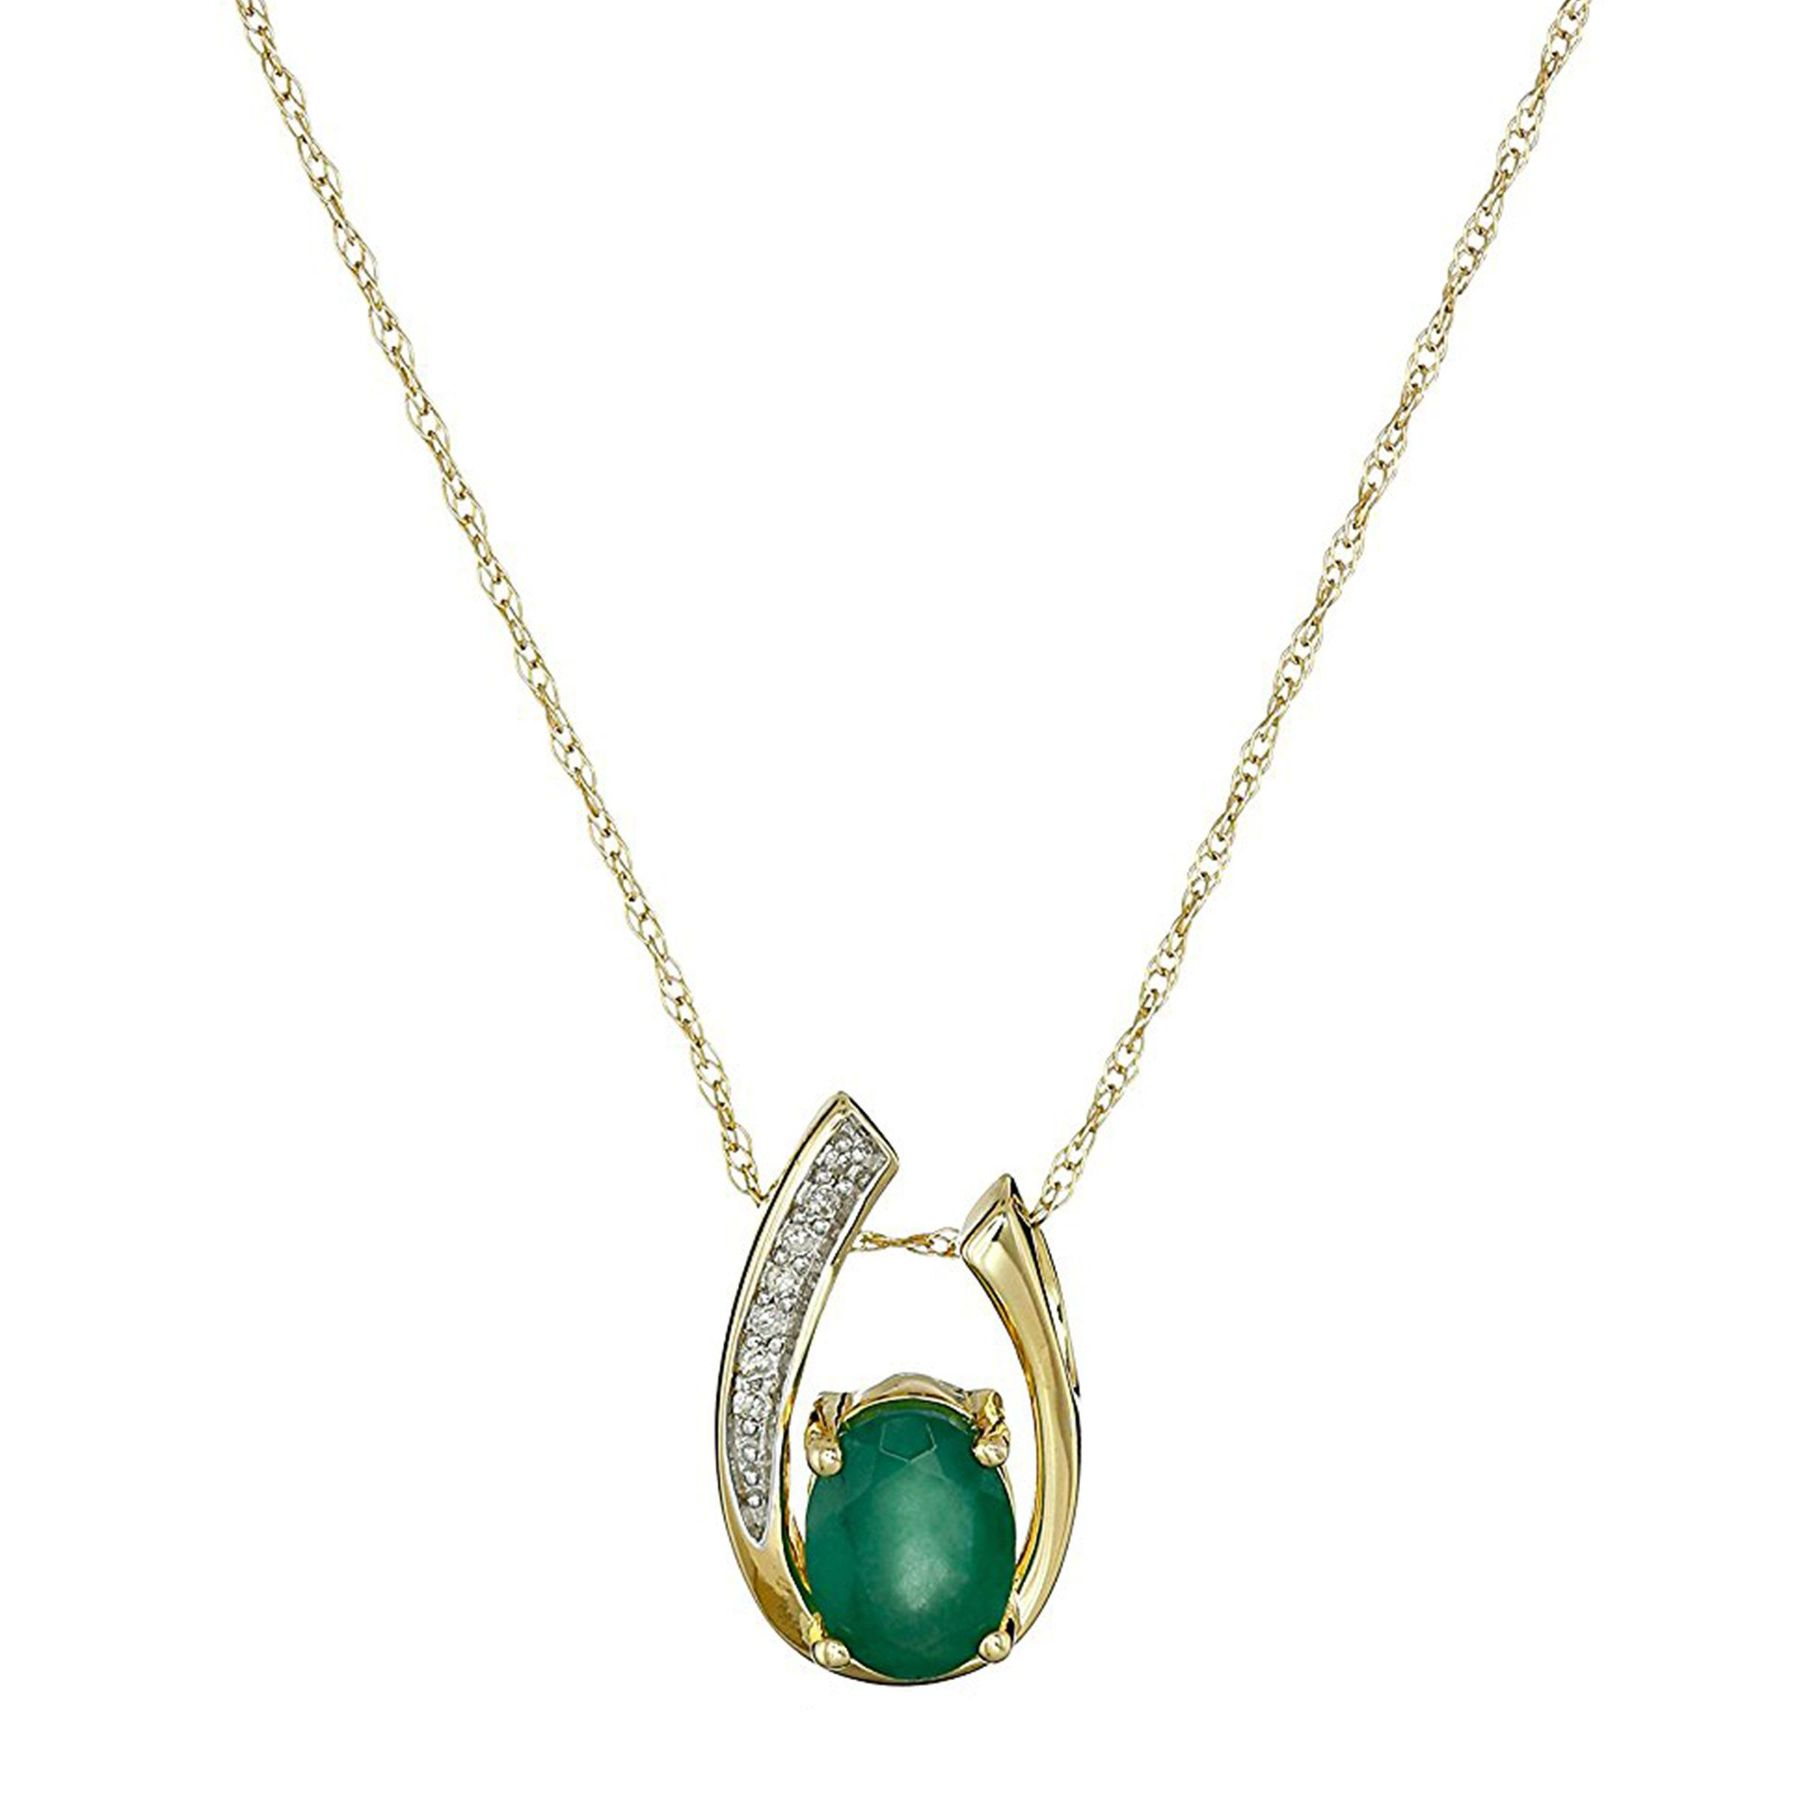 ables necklace gold emerald mall diamond wholesale accented gemstone china natural pendant halo in products